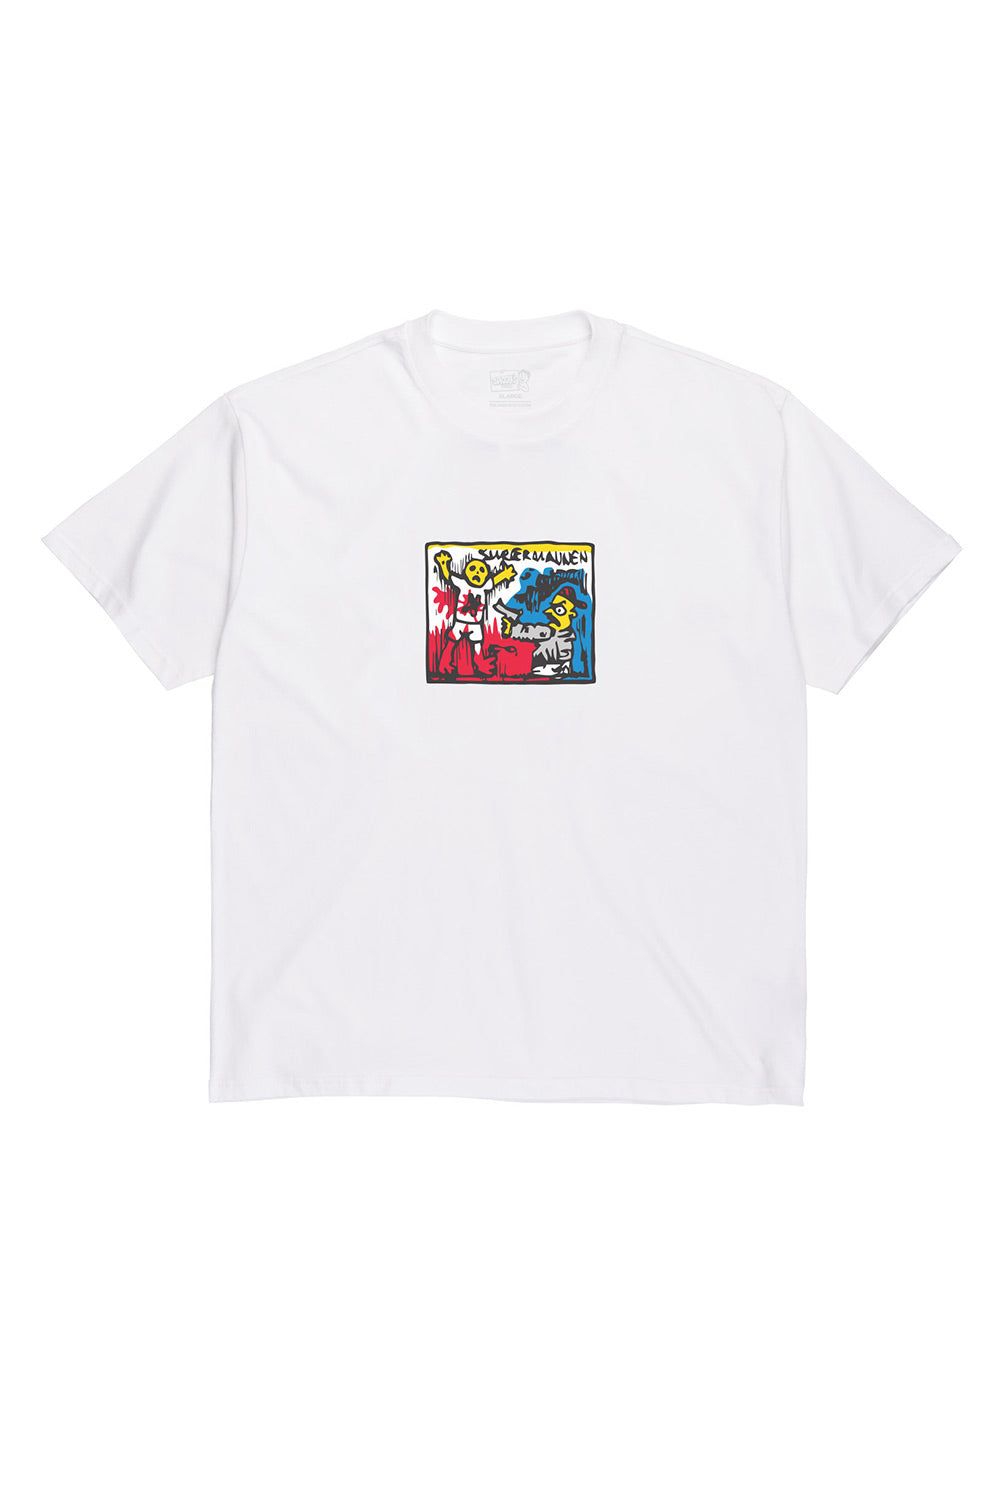 Polar Skate Co Supermannen Tee - White | Buy Polar Skate Co Online